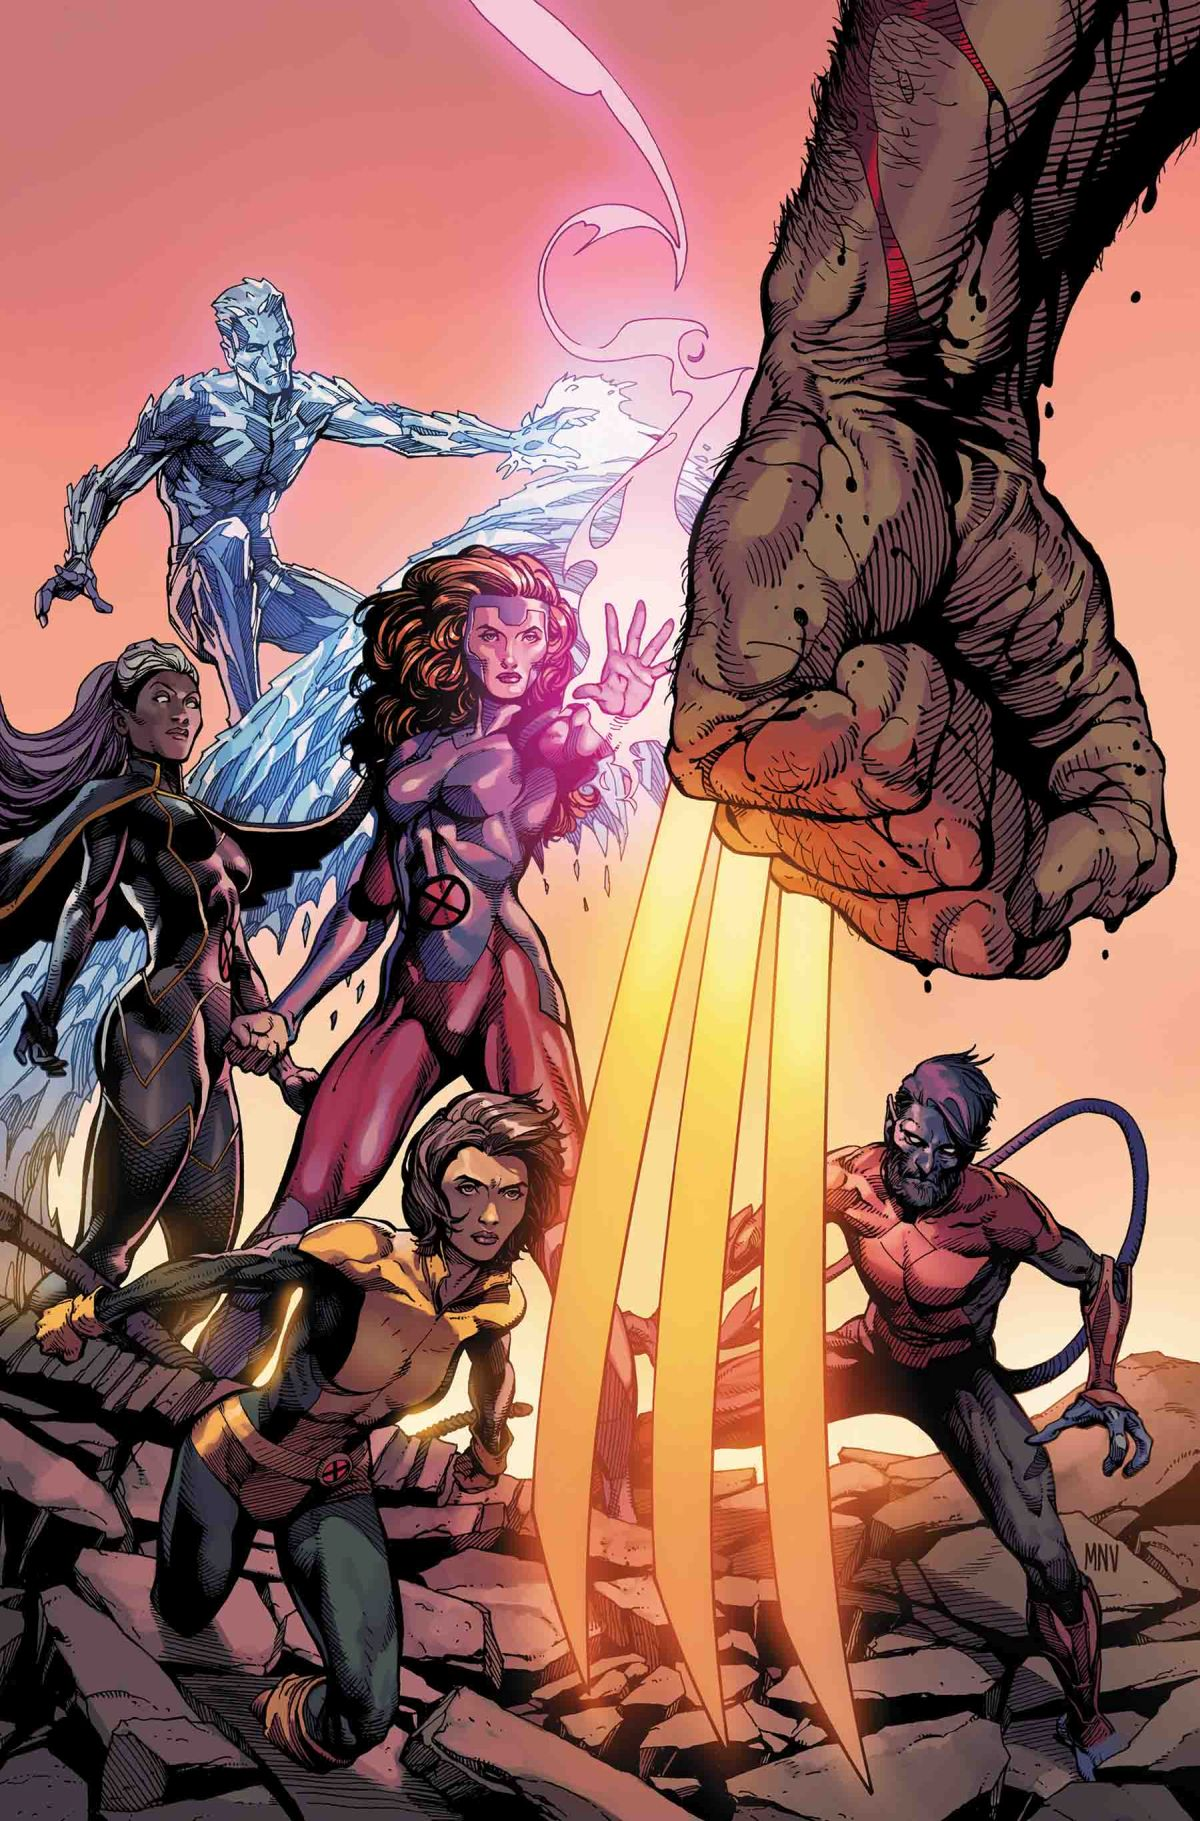 RETURN OF WOLVERINE #3 (of 5)